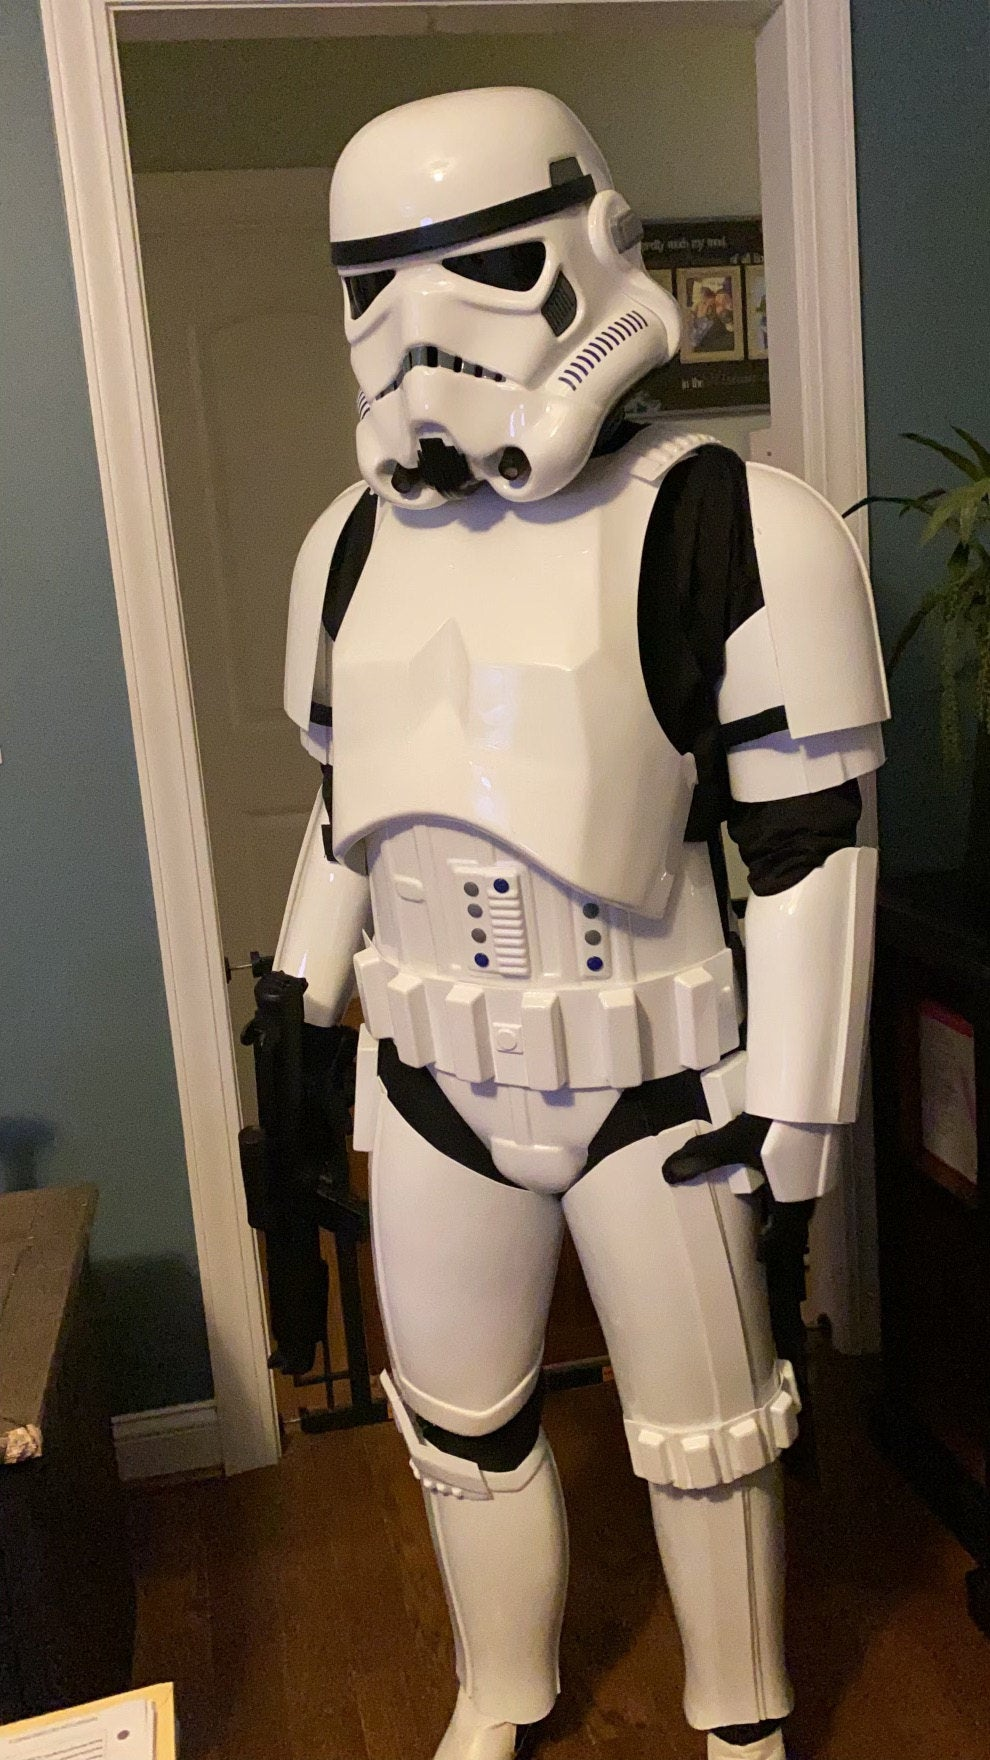 Stormtrooper Armor Review from MJ